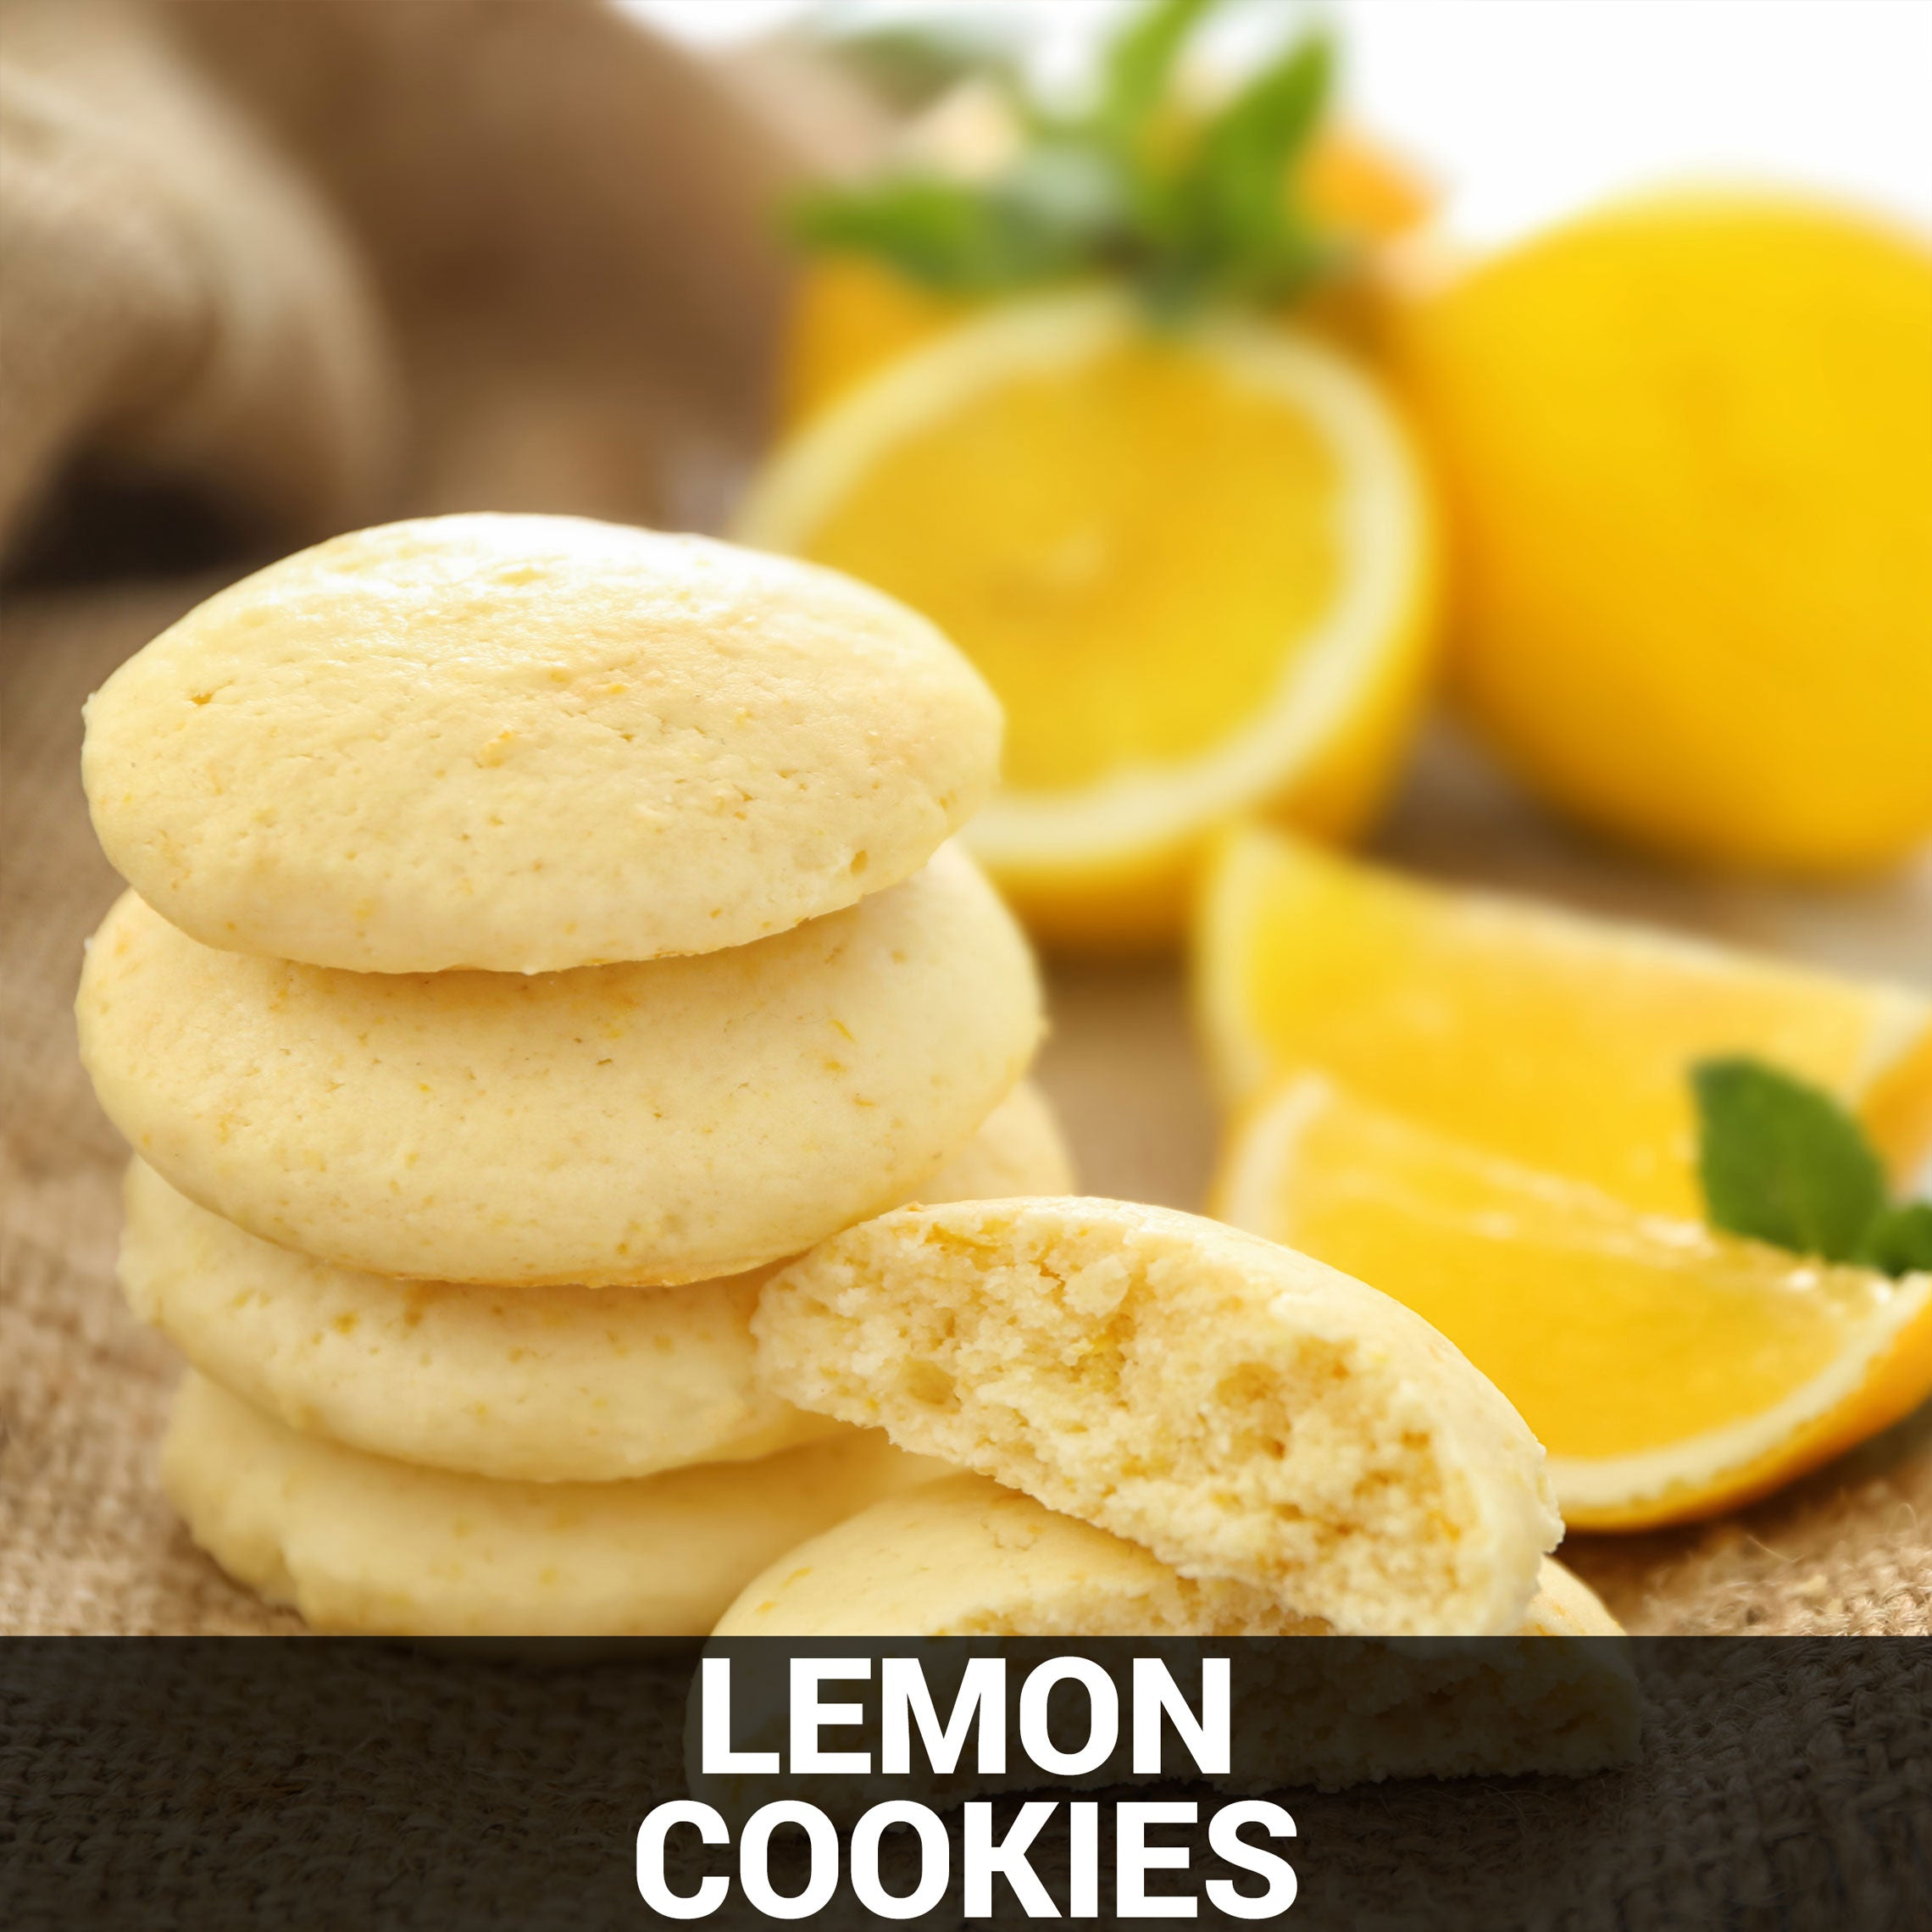 Lemon Cookies Recipe - Foods Alive